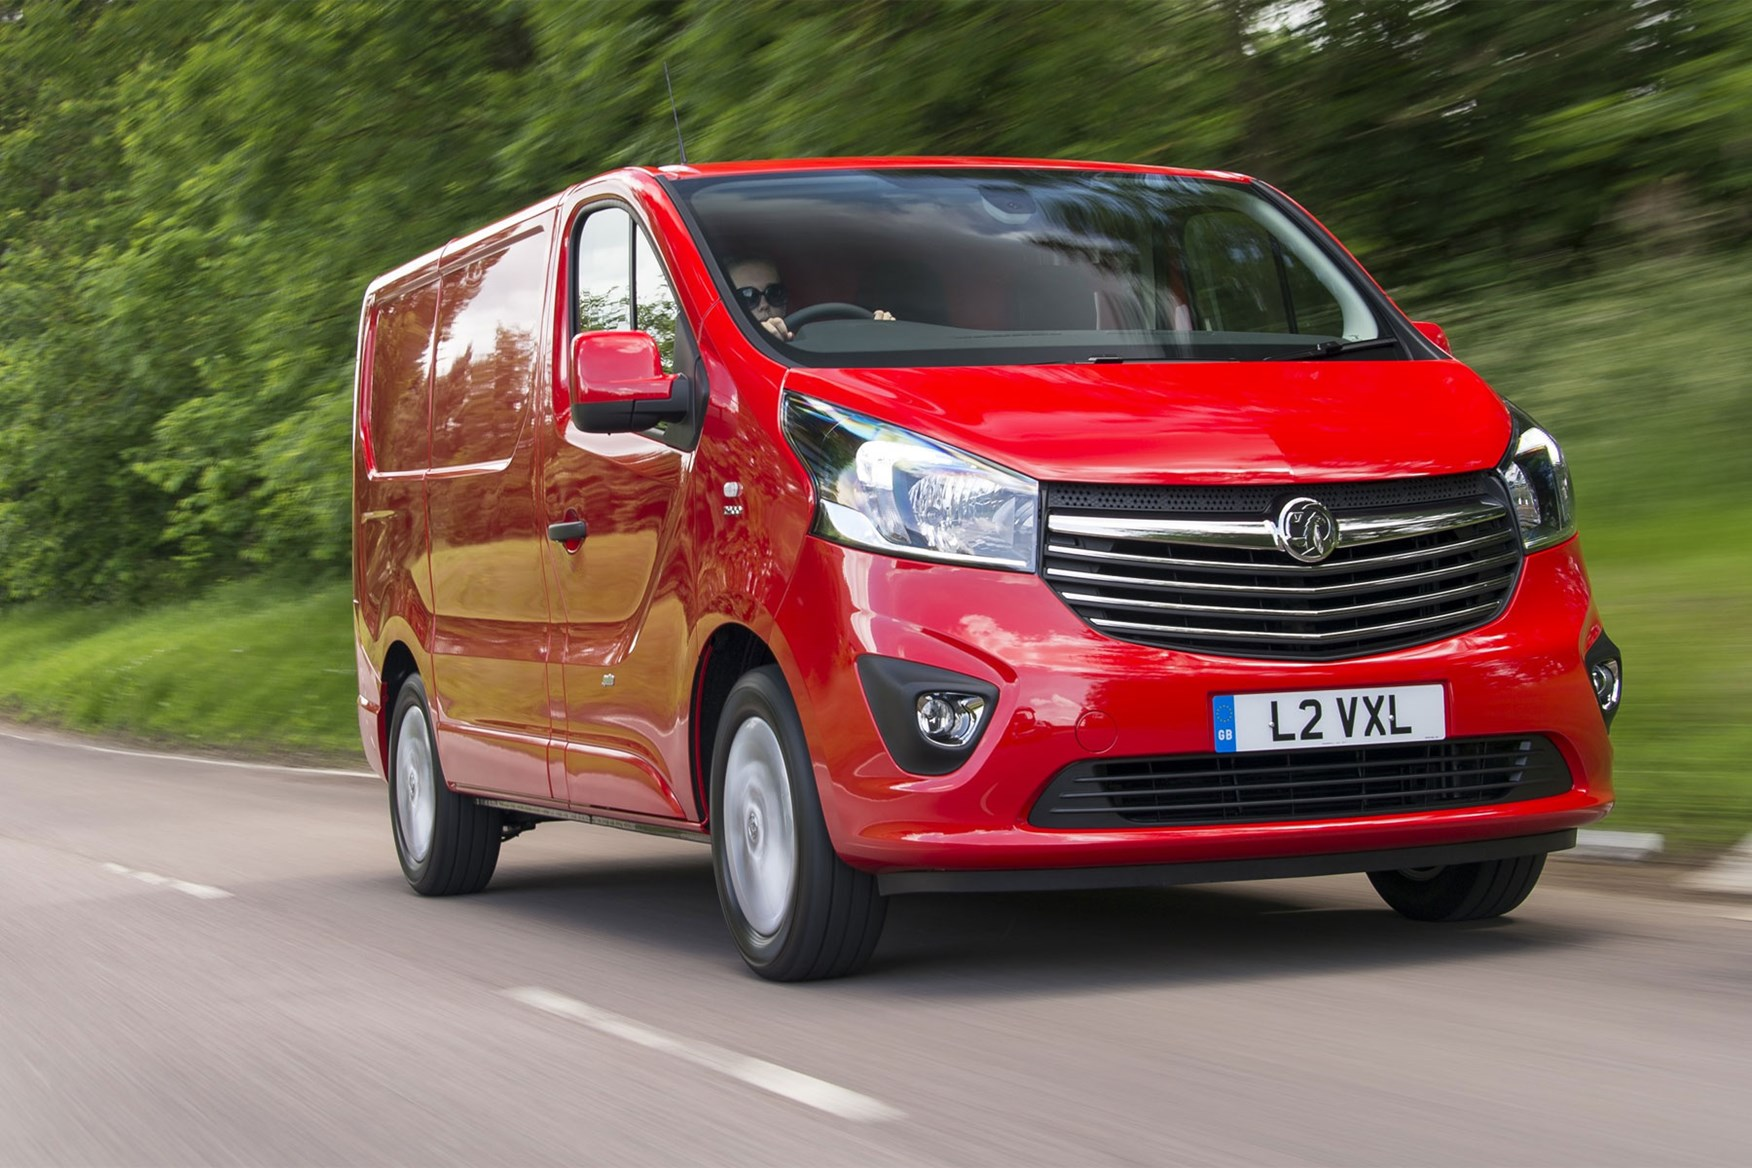 Vauxhall Vivaro review - front view, red, driving